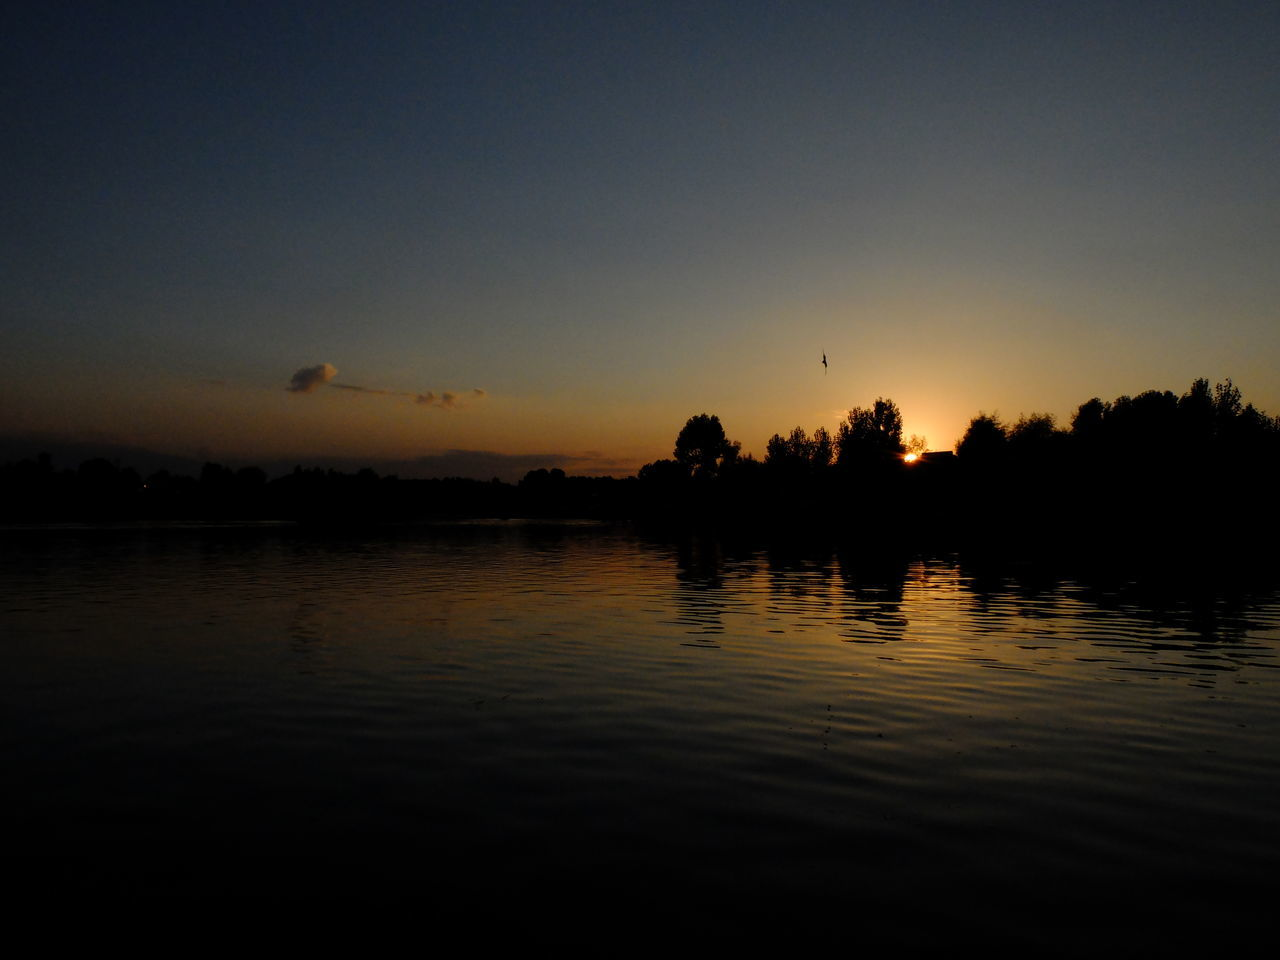 Animal Themes Beauty In Nature Bird Day Lake Nature No People Outdoors Reflection Scenics Silhouette Sky Srinagar Kashmir Sunset Tranquility Tree Water